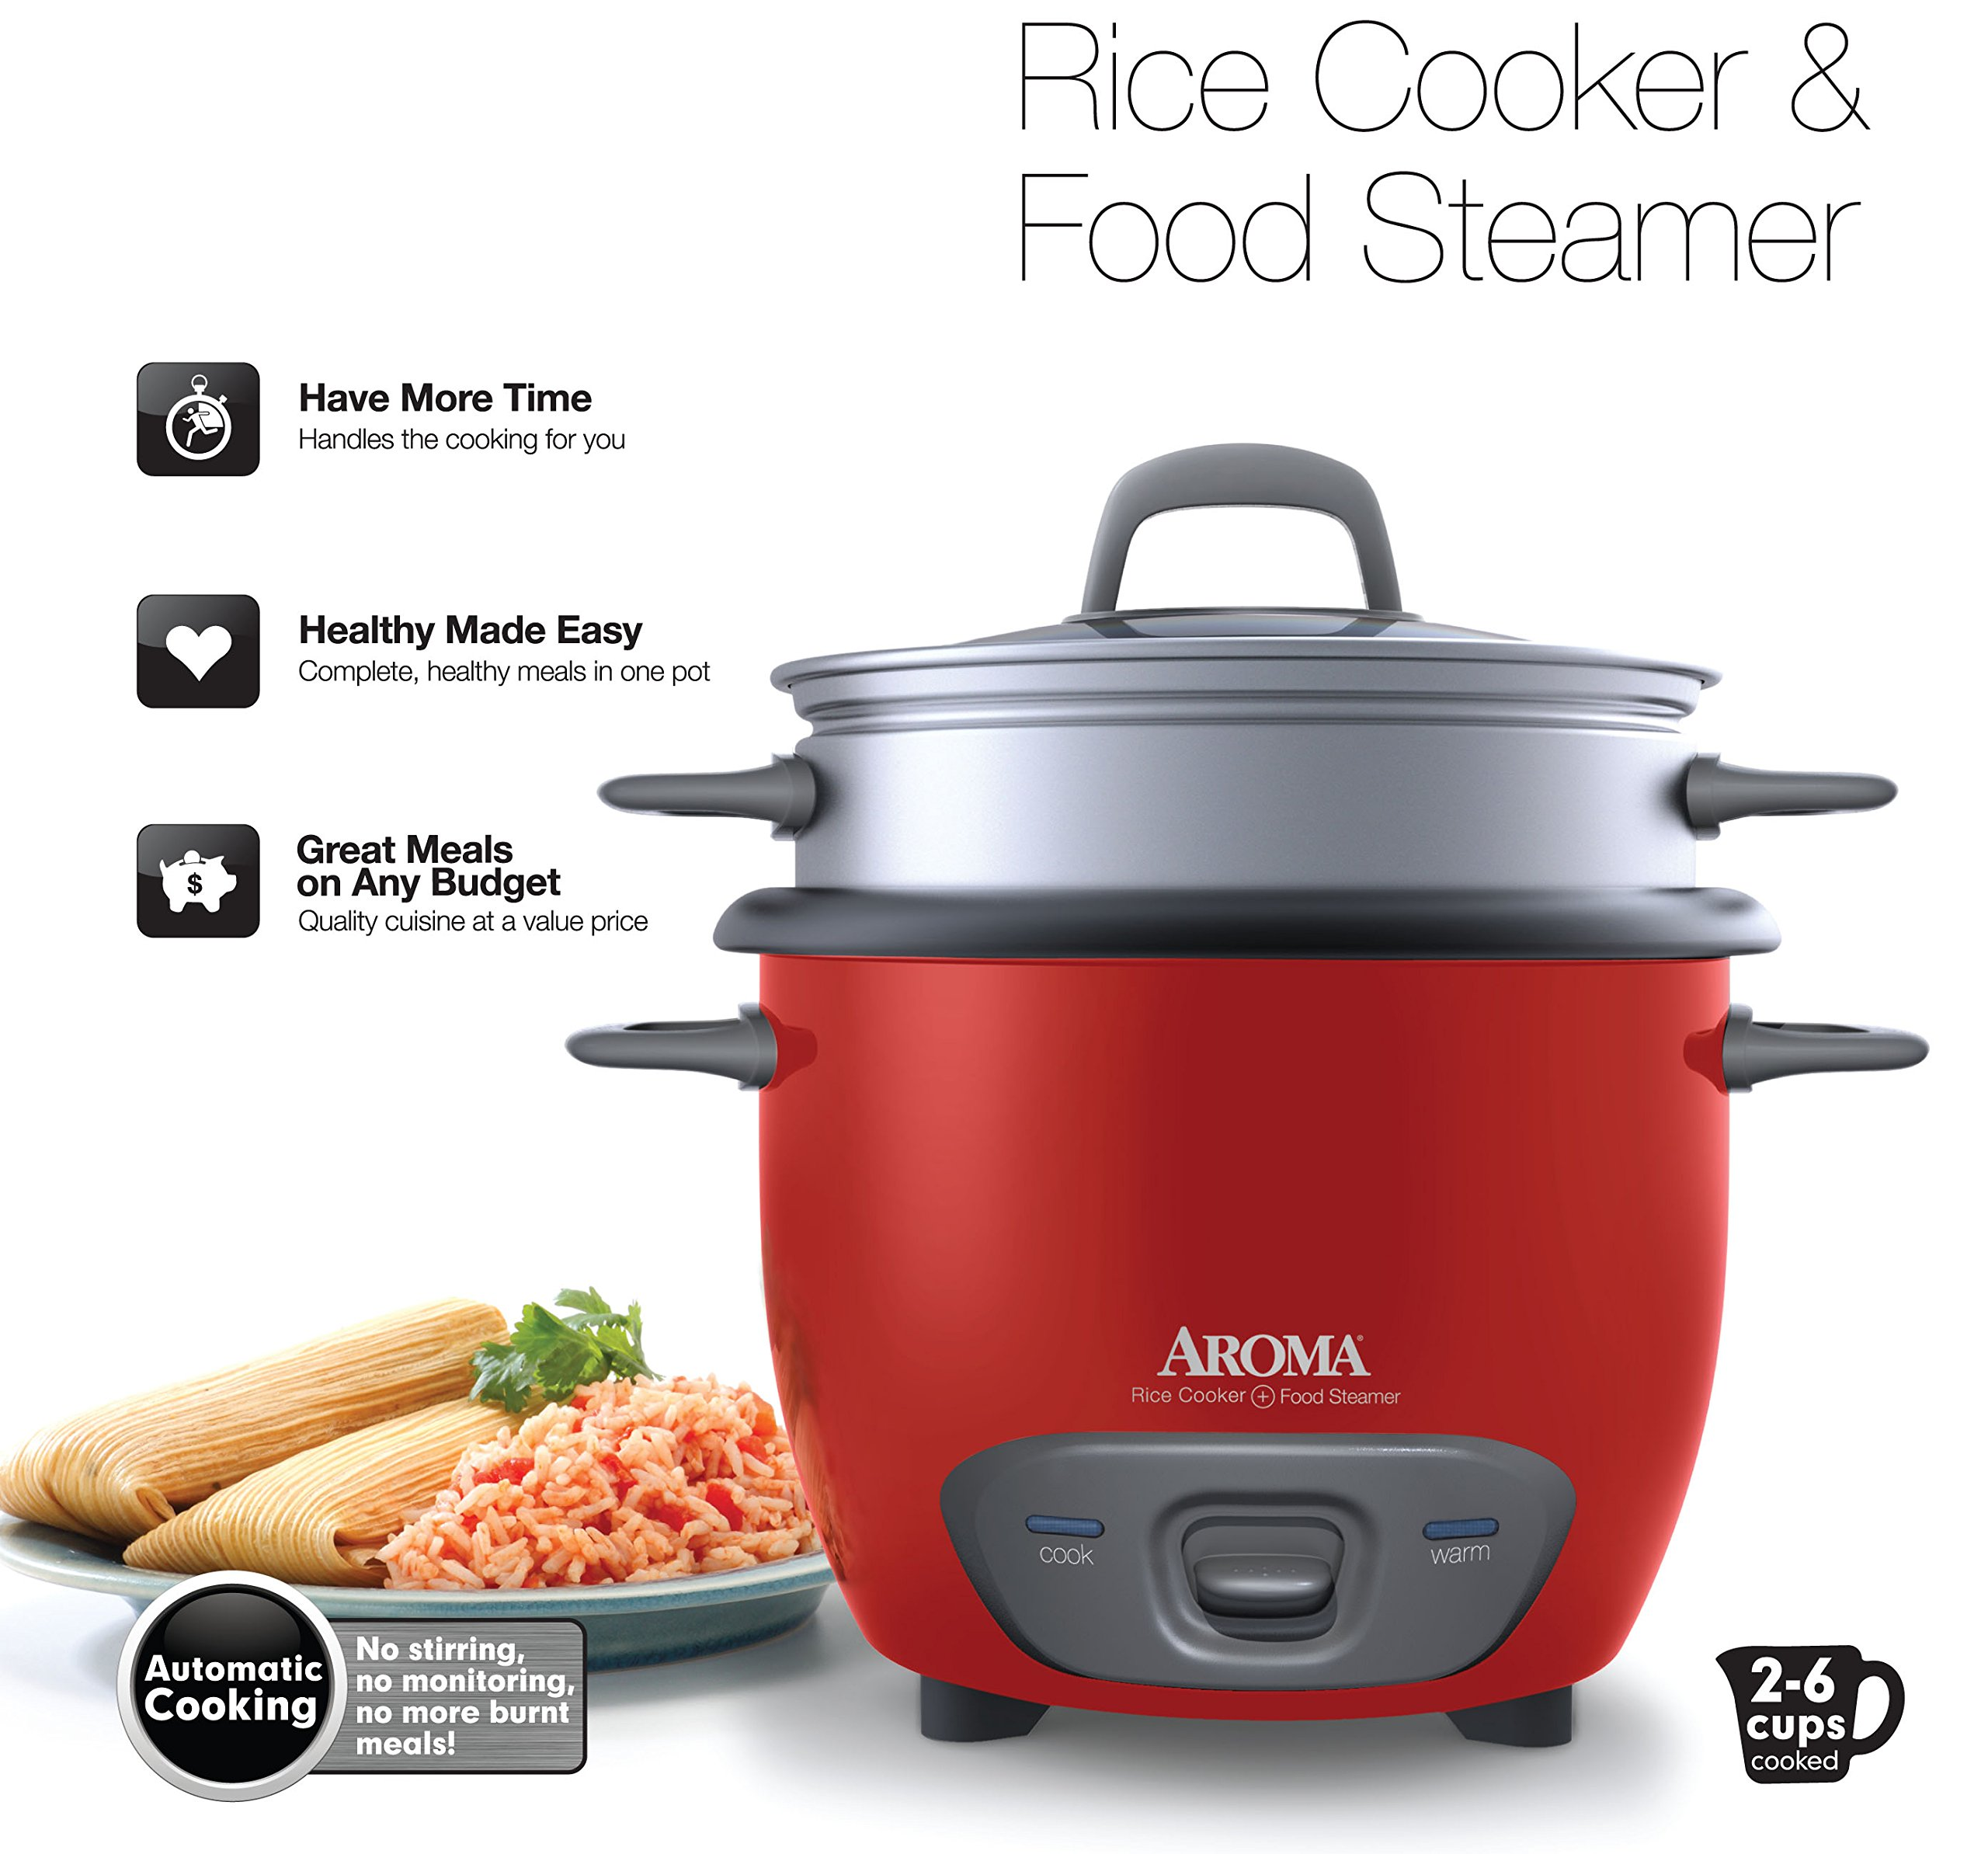 Aroma Housewares 6-Cup (Cooked) (3-Cup UNCOOKED) Pot Style Rice Cooker and Food Steamer by Aroma Housewares (Image #7)